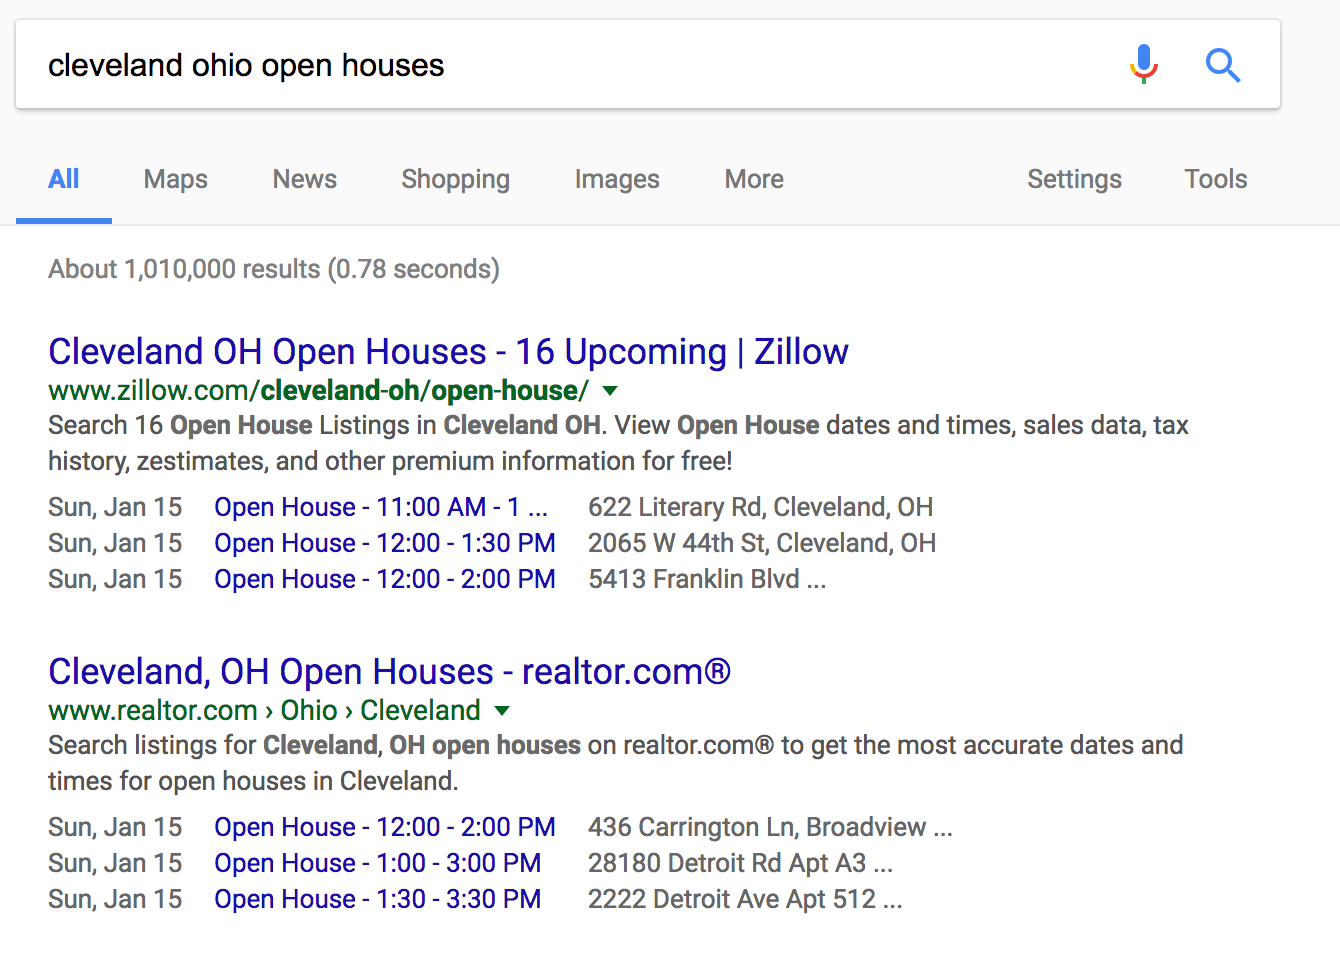 Open house information in search results